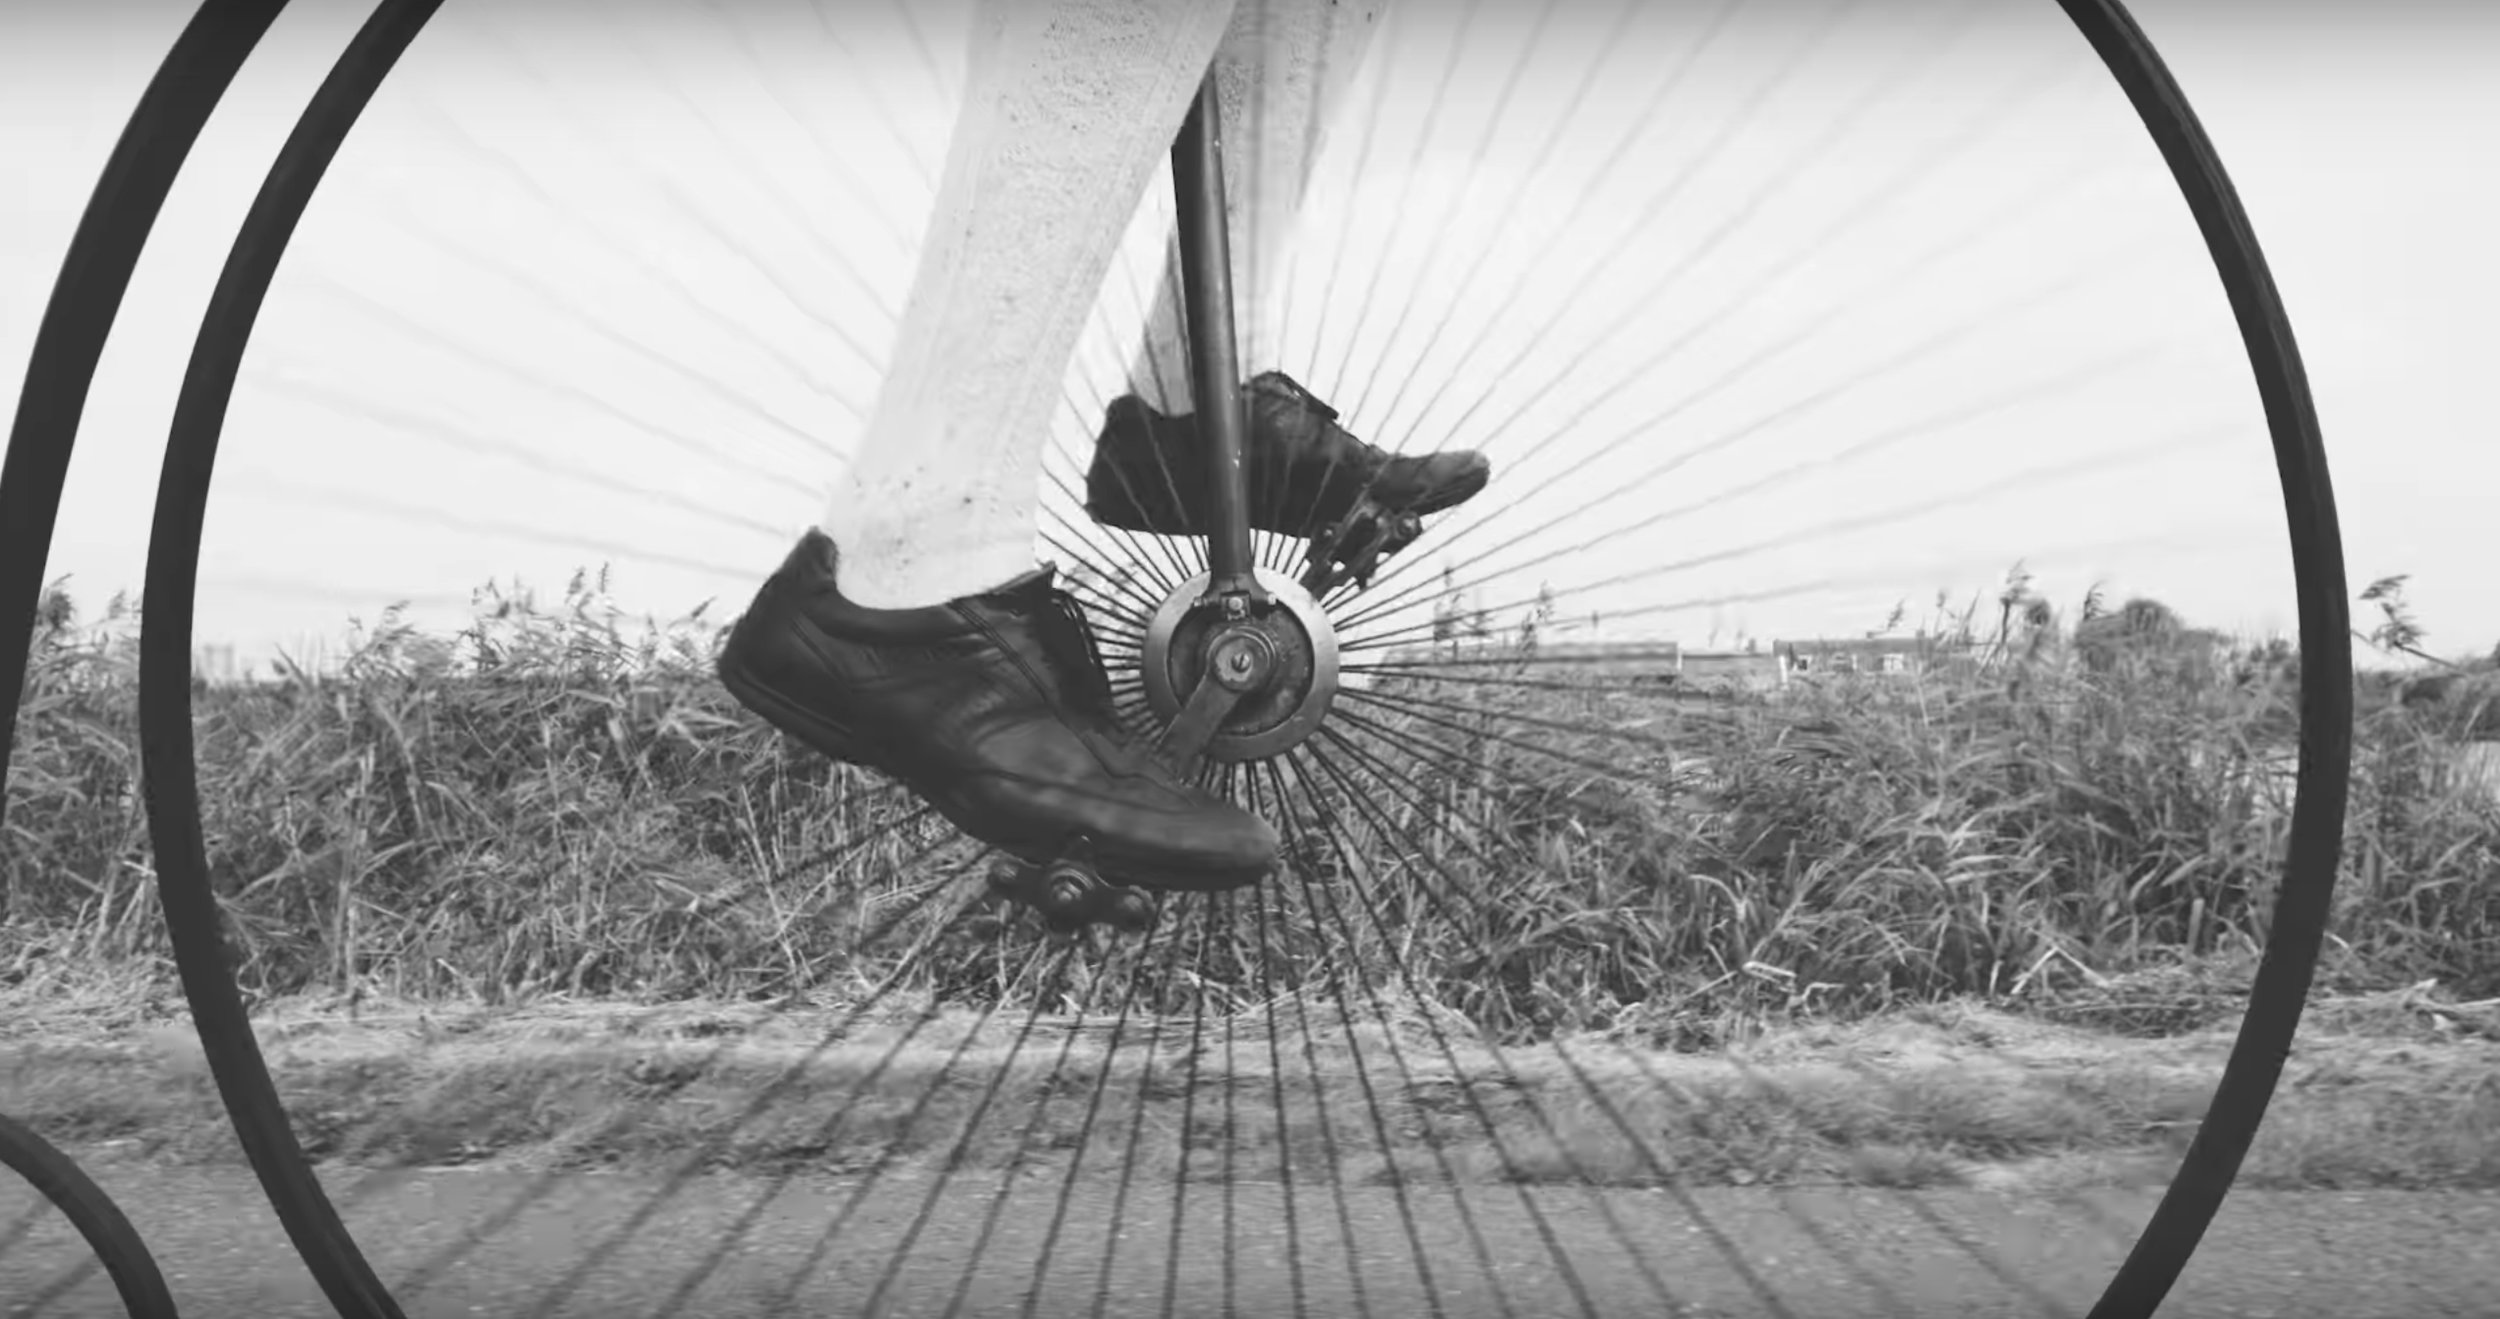 Ujet: Reinventing the wheel - Commercial